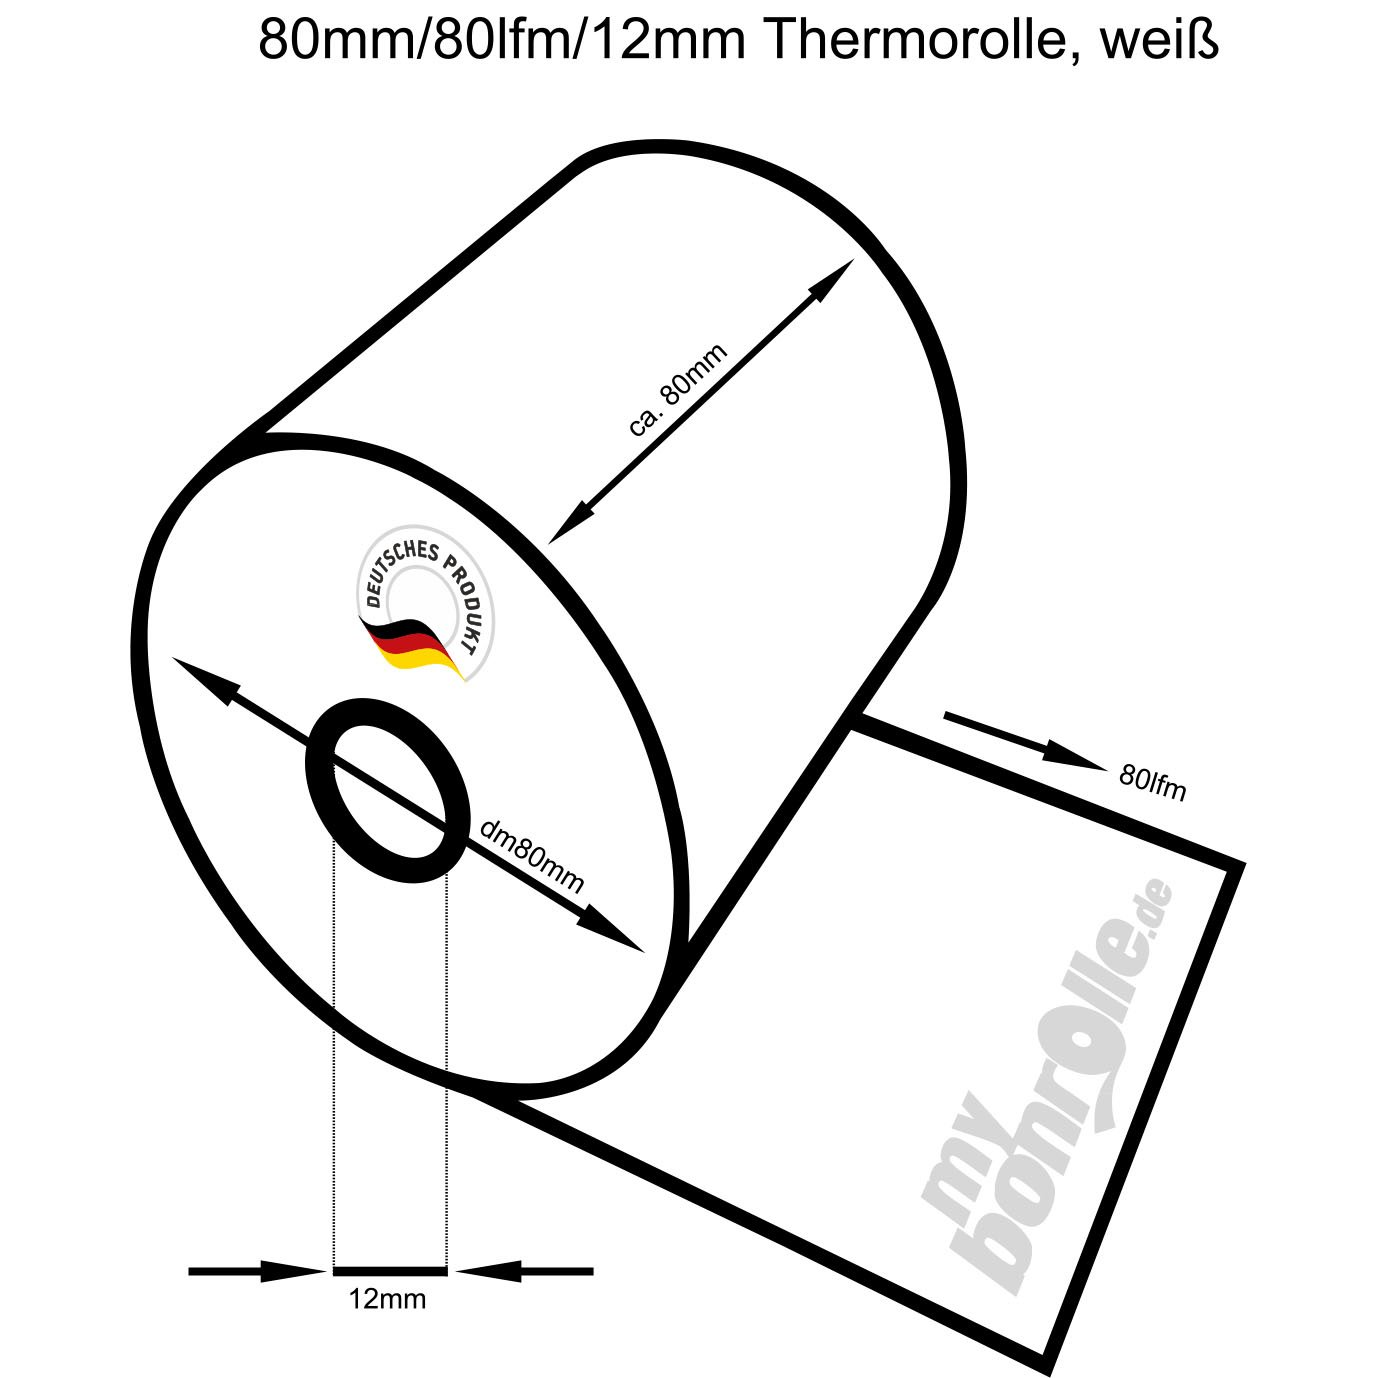 55gr. Made in Germany 80mm x 80lfm x 12mm Thermorollen 5 St/ück Premium